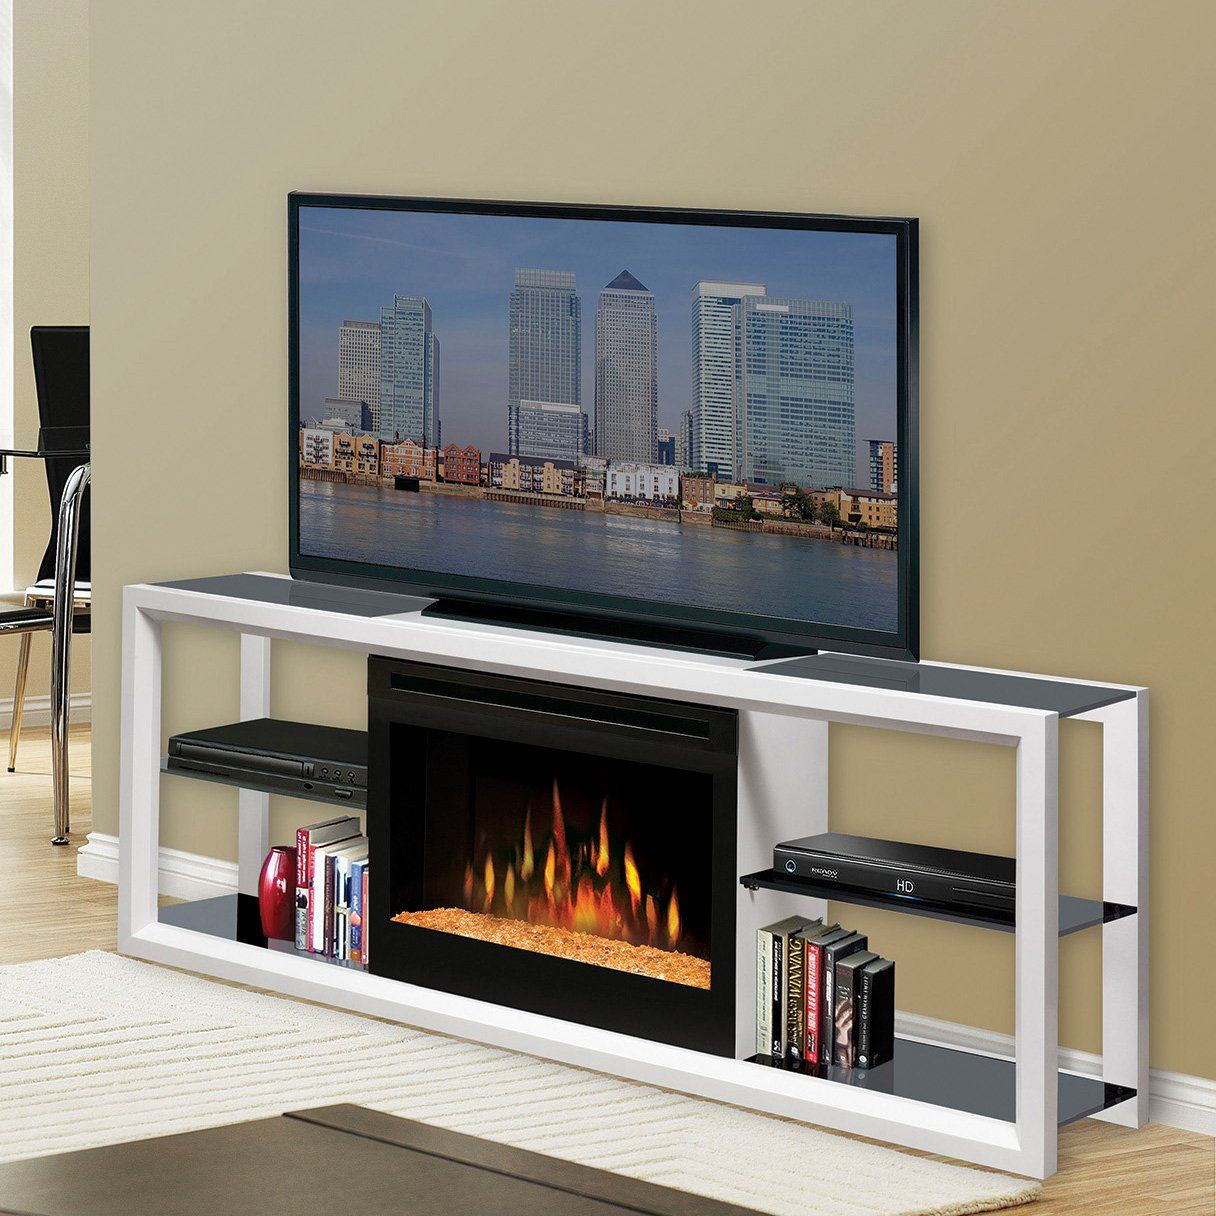 fireplace white heating fireplaces boston at center shop stoves pl in furnishings electric montelena loft faux cooling stone w mdf lowes com entertainment btu